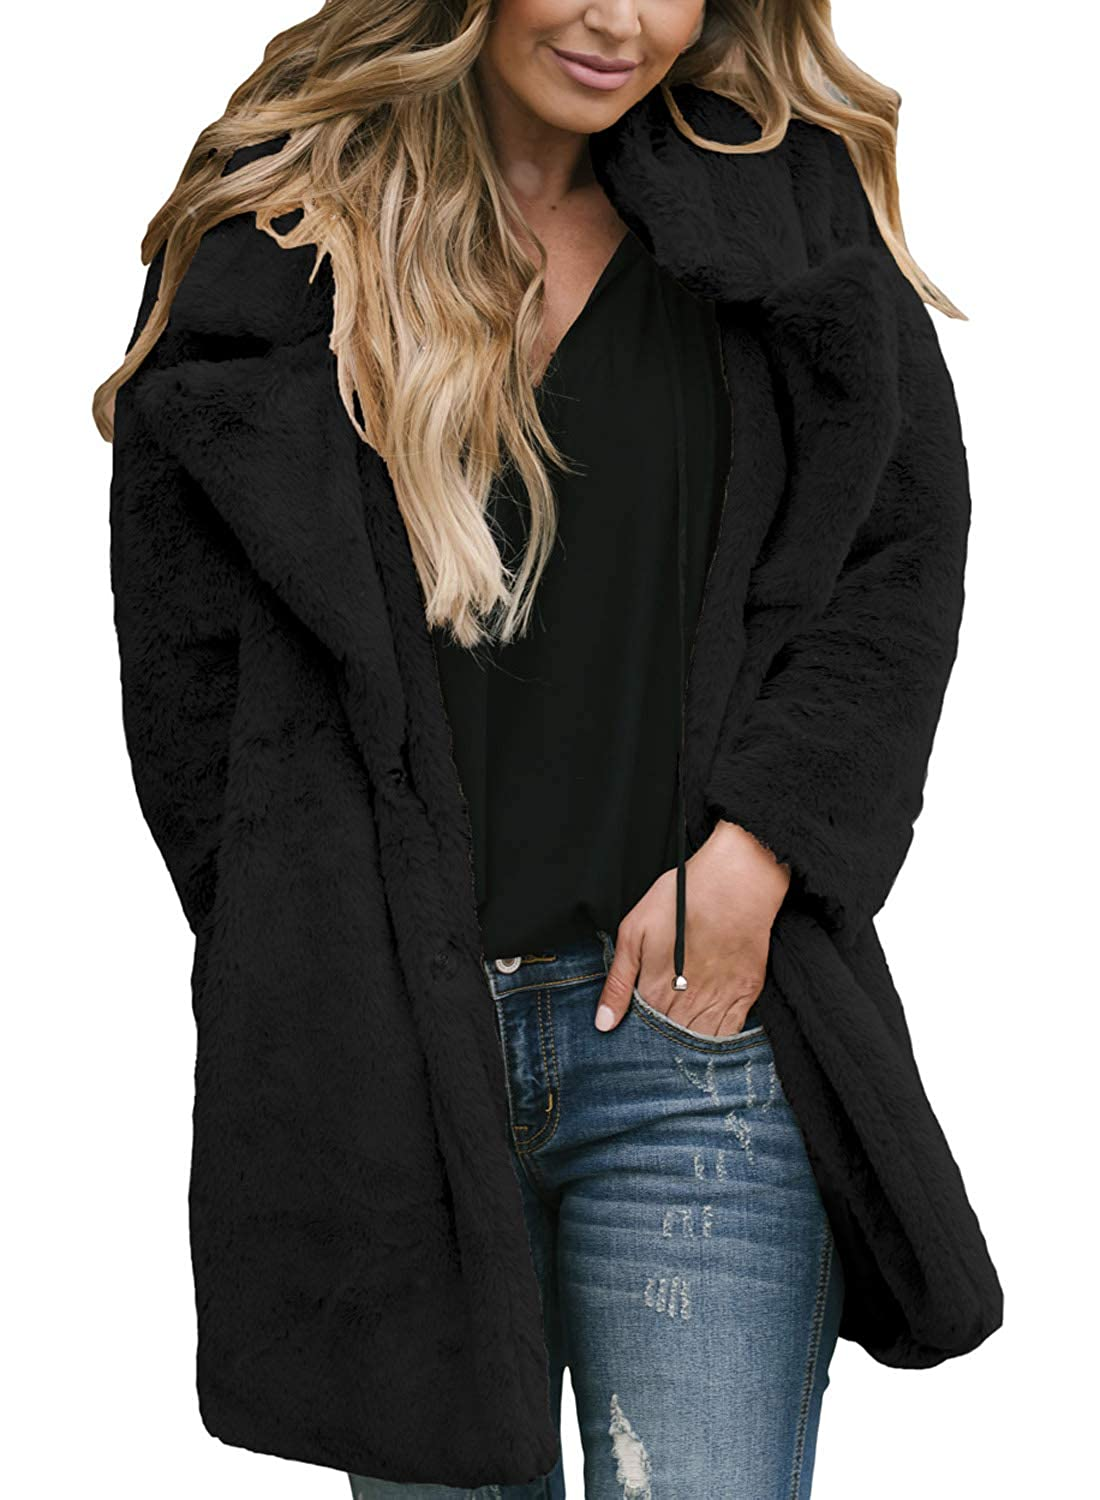 Aleumdr Womens Cozy Long Sleeve Open Front Lapel Faux Fur Fluffy Jacket Coat Outerwear with Pocket CH85148